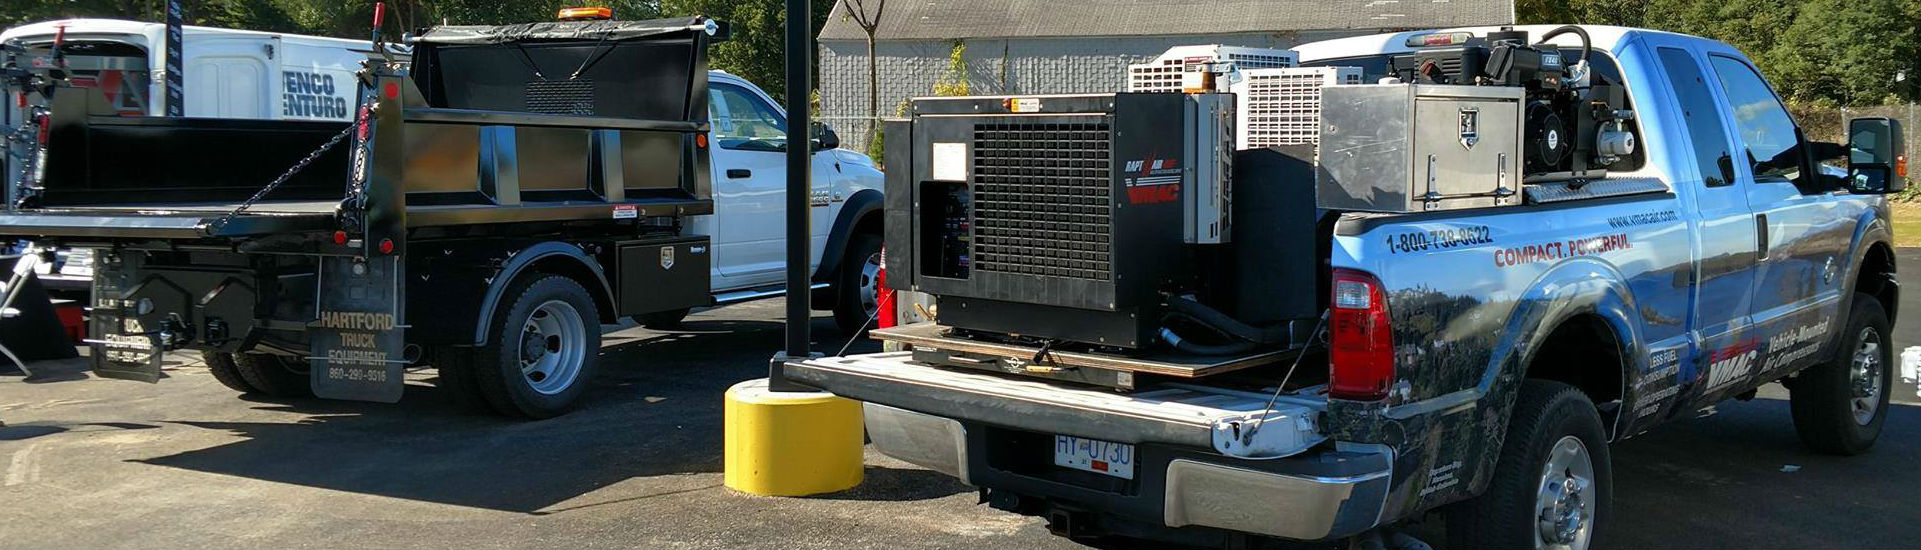 D60 diesel air compressor on demo truck